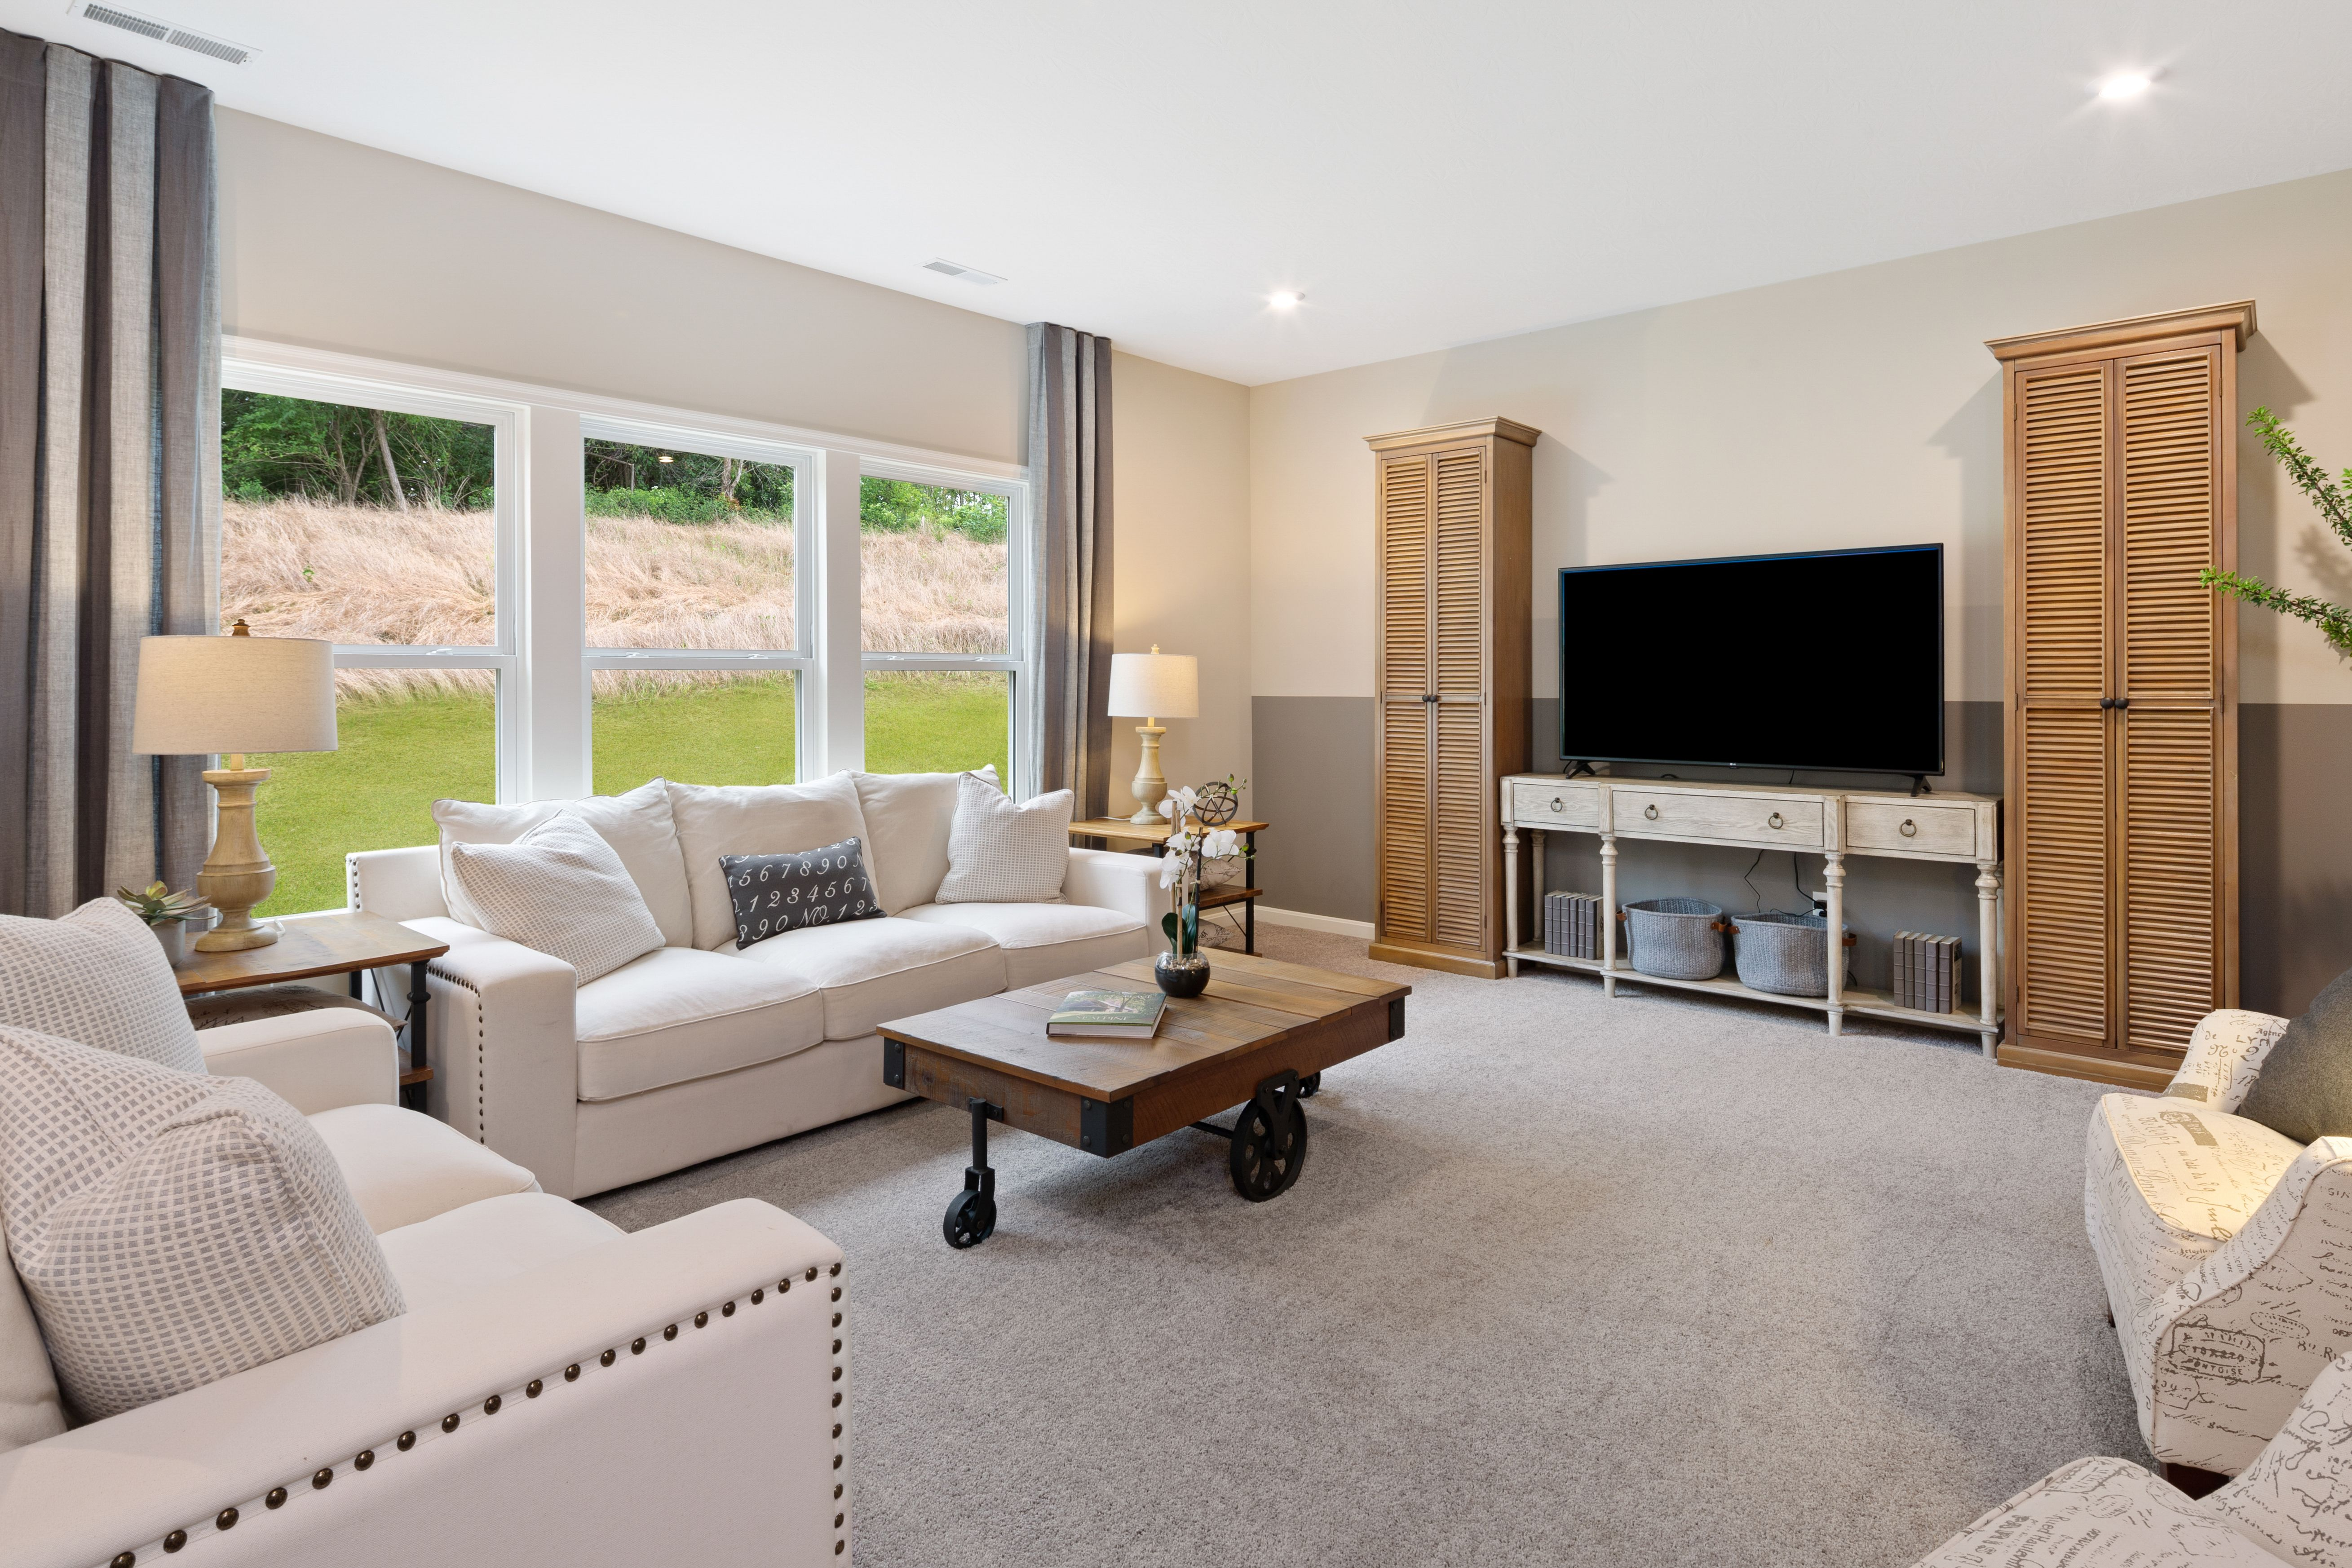 Living Area featured in the Yosemite By Fischer Homes  in Cincinnati, KY